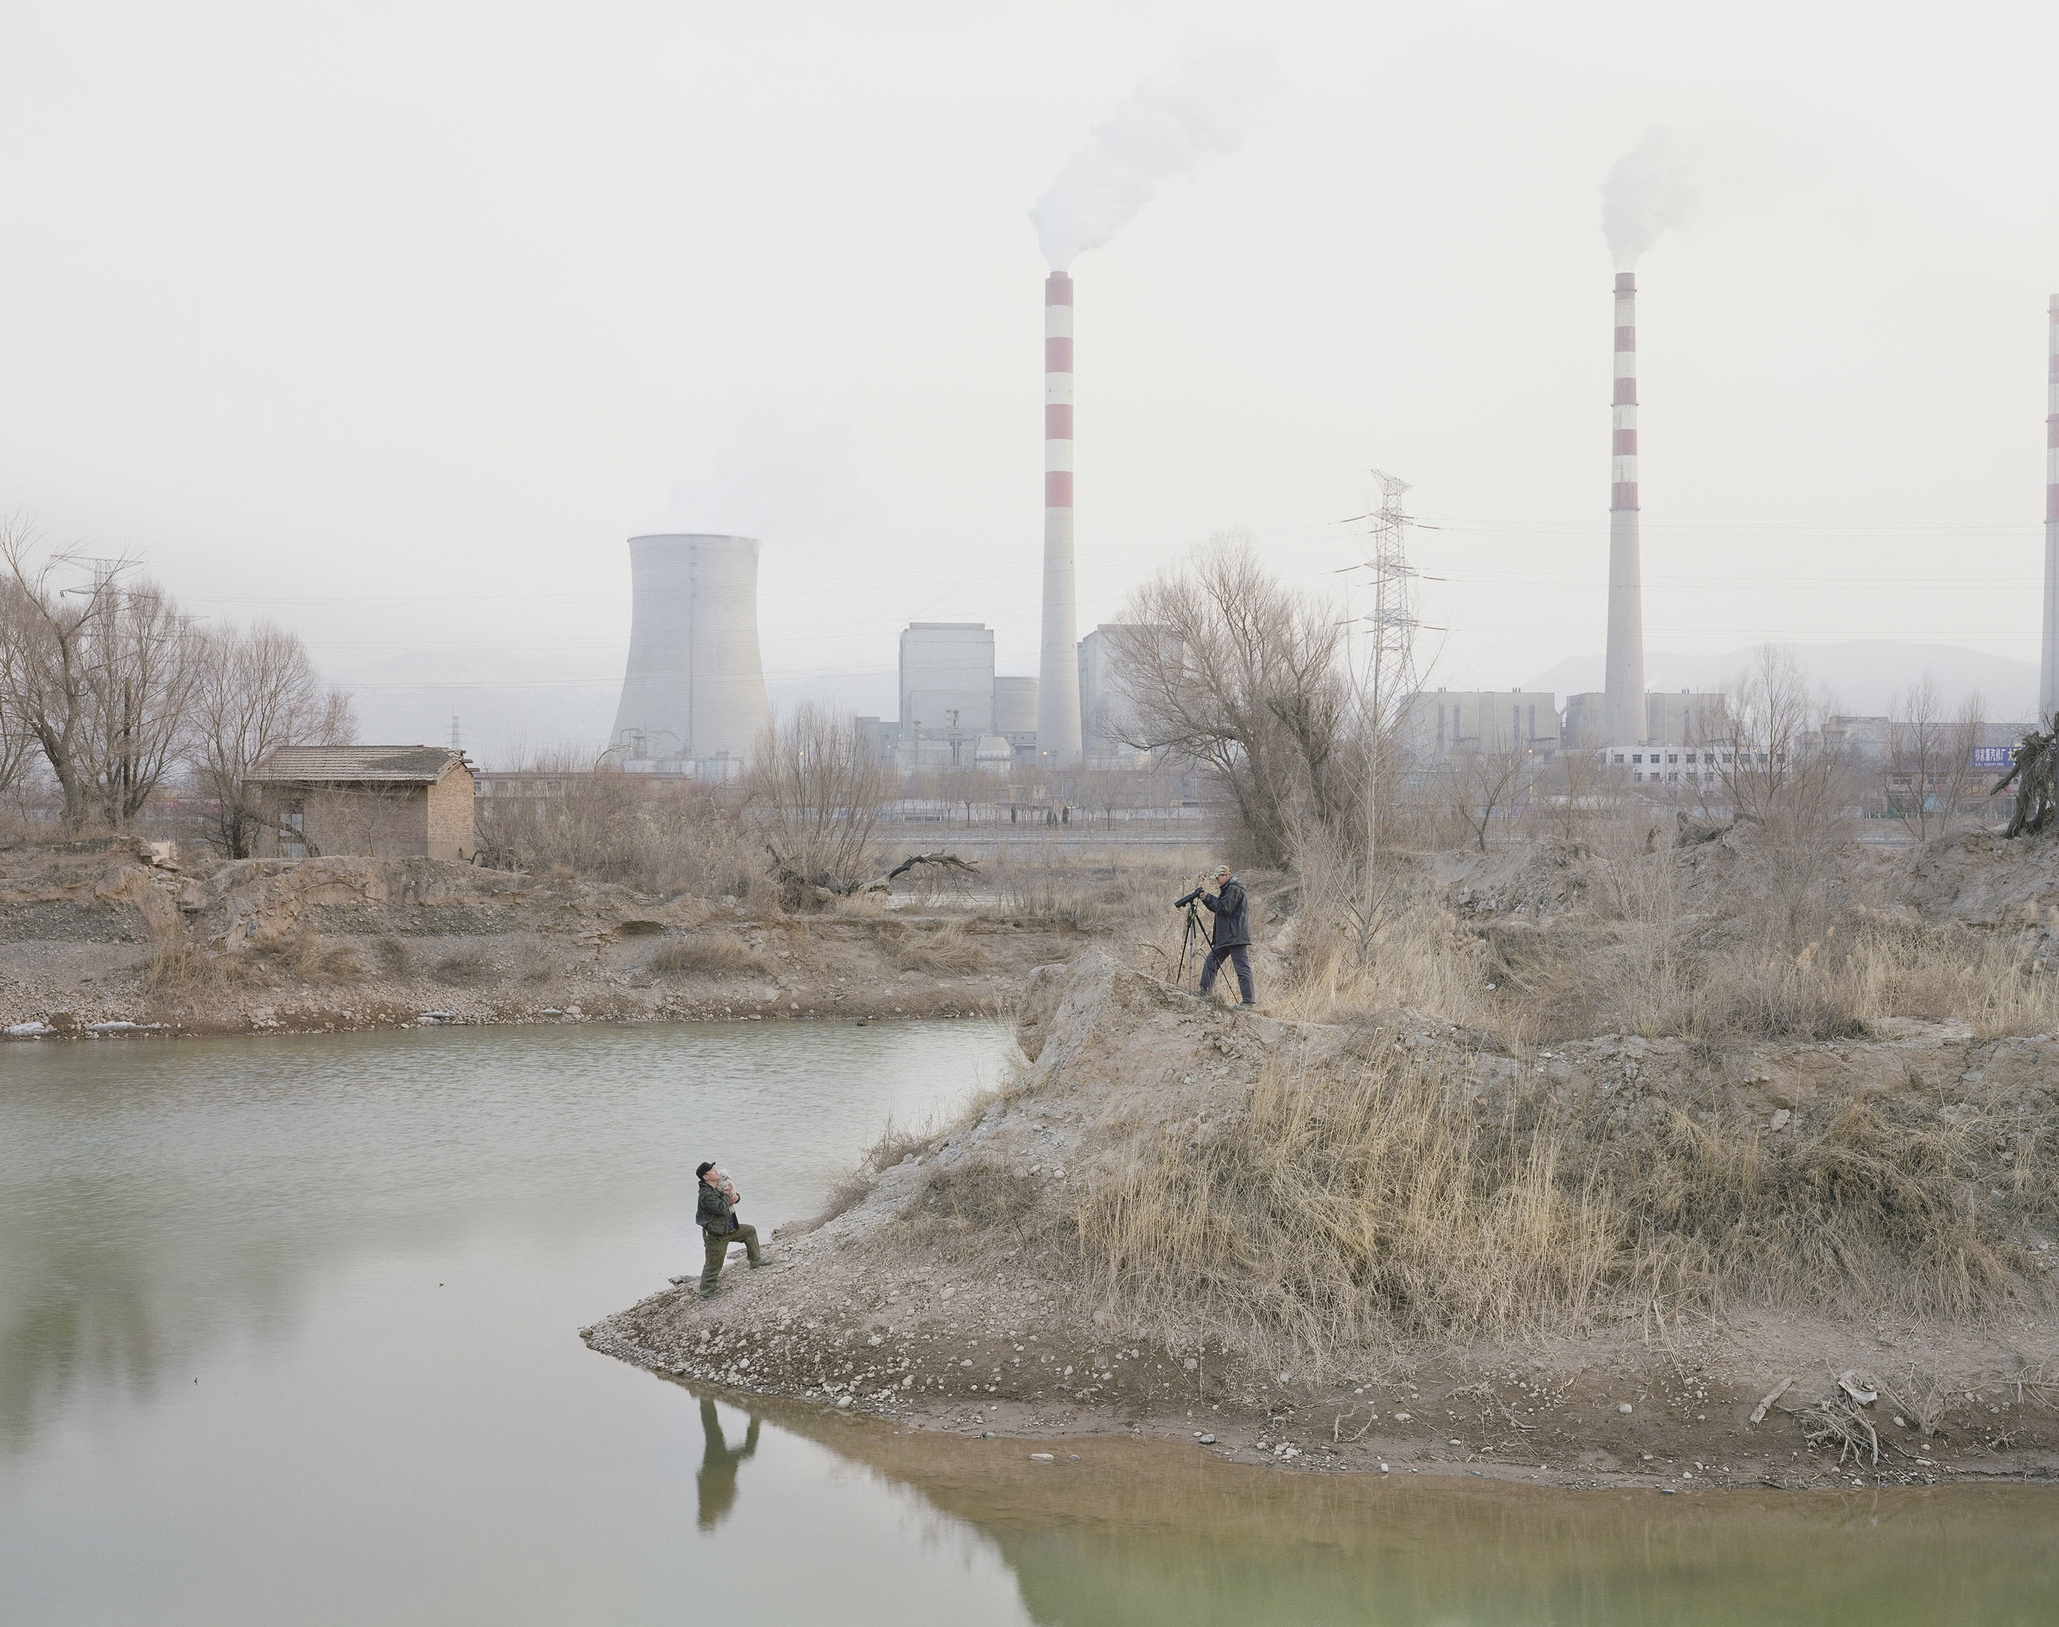 Two Men Taking Photos by the River, Gansu, 2010